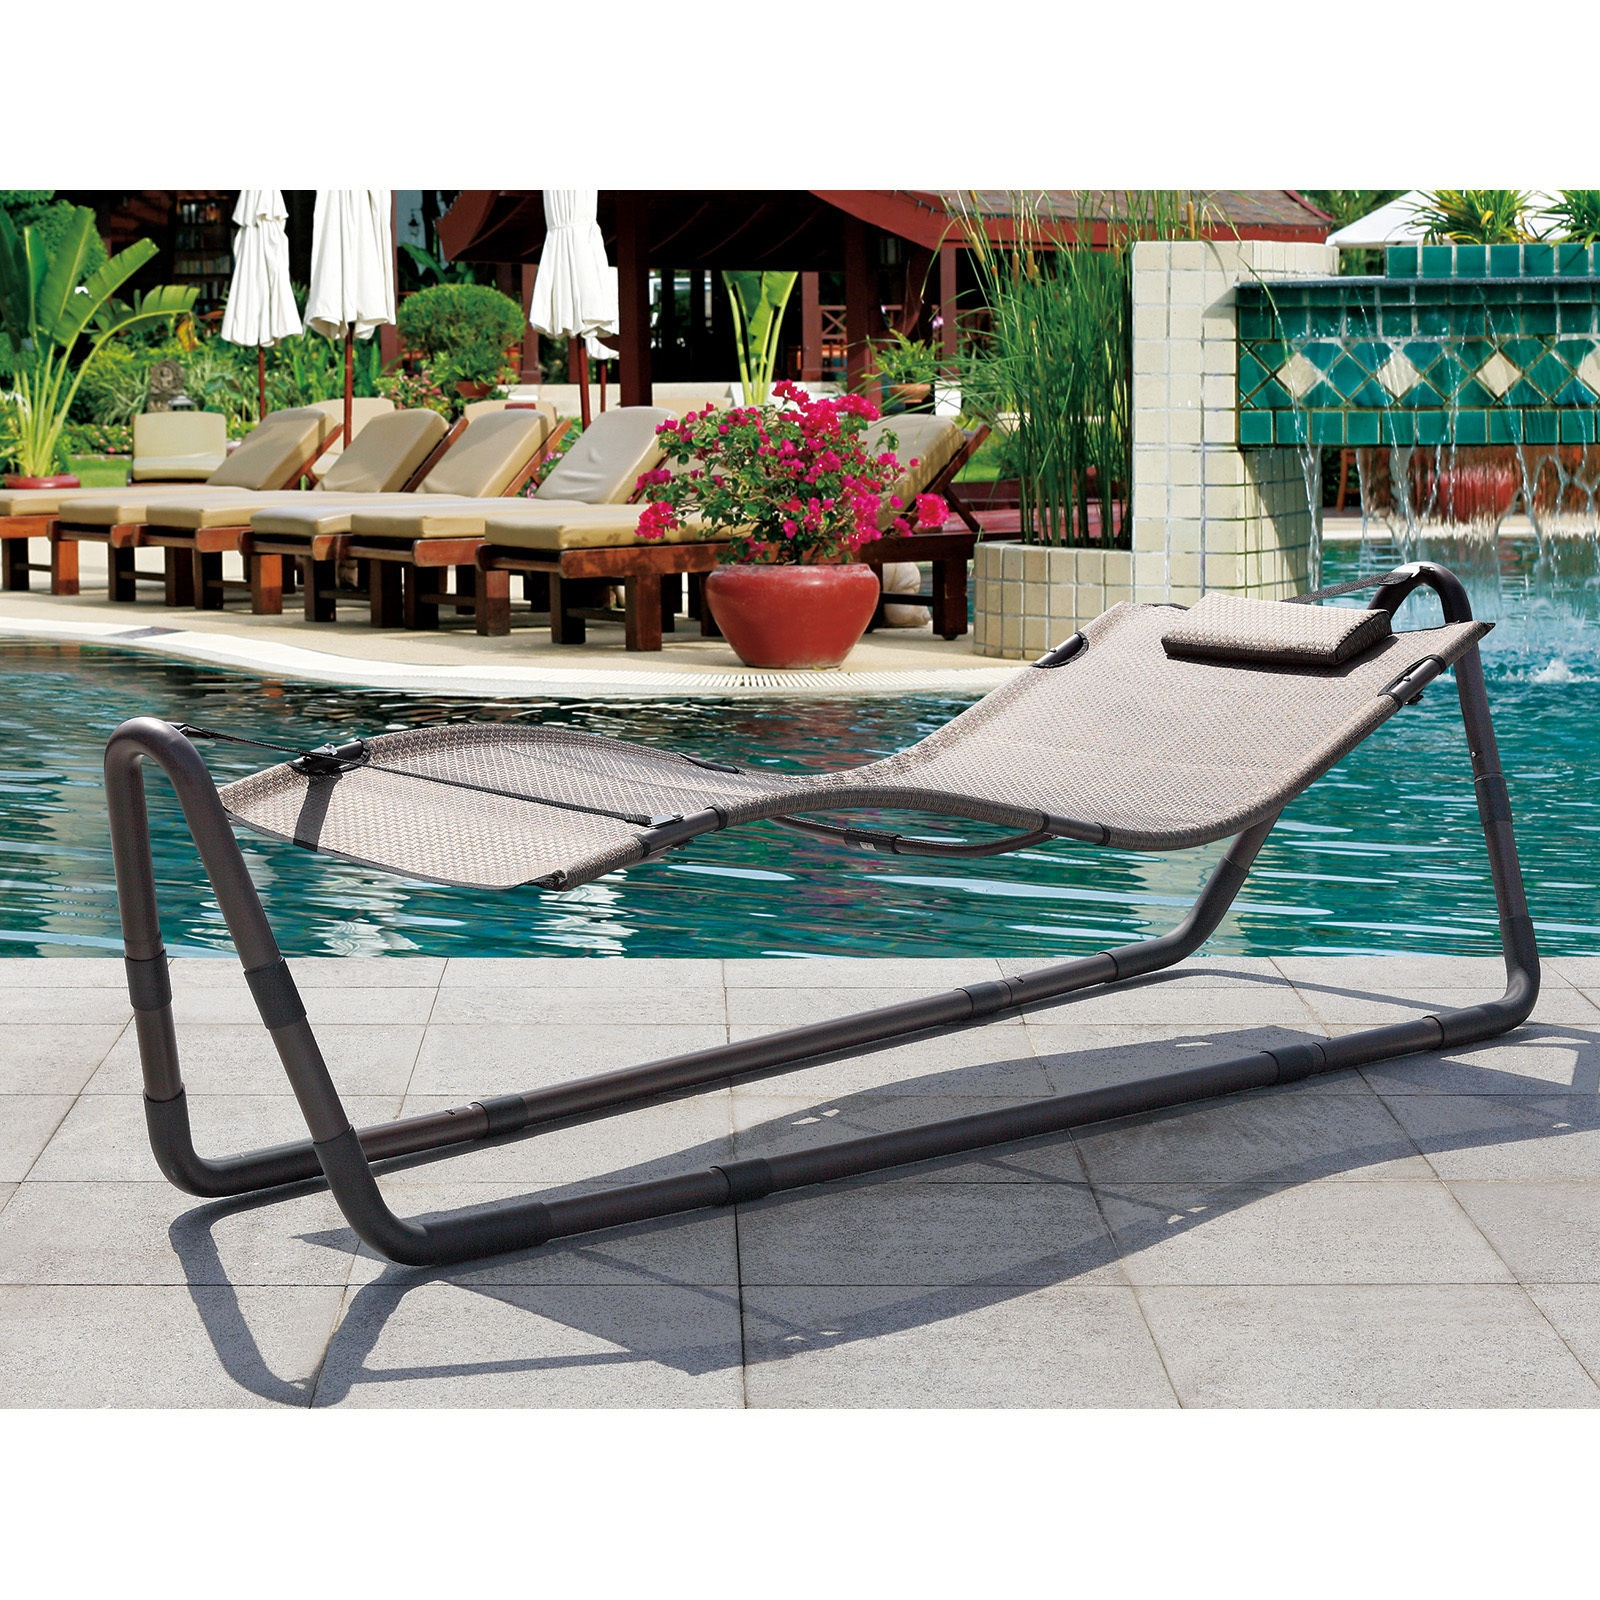 Www Modern Furniture: Modern Outdoor Patio Hammock Sun Bed Deck Pool Lounge Chair